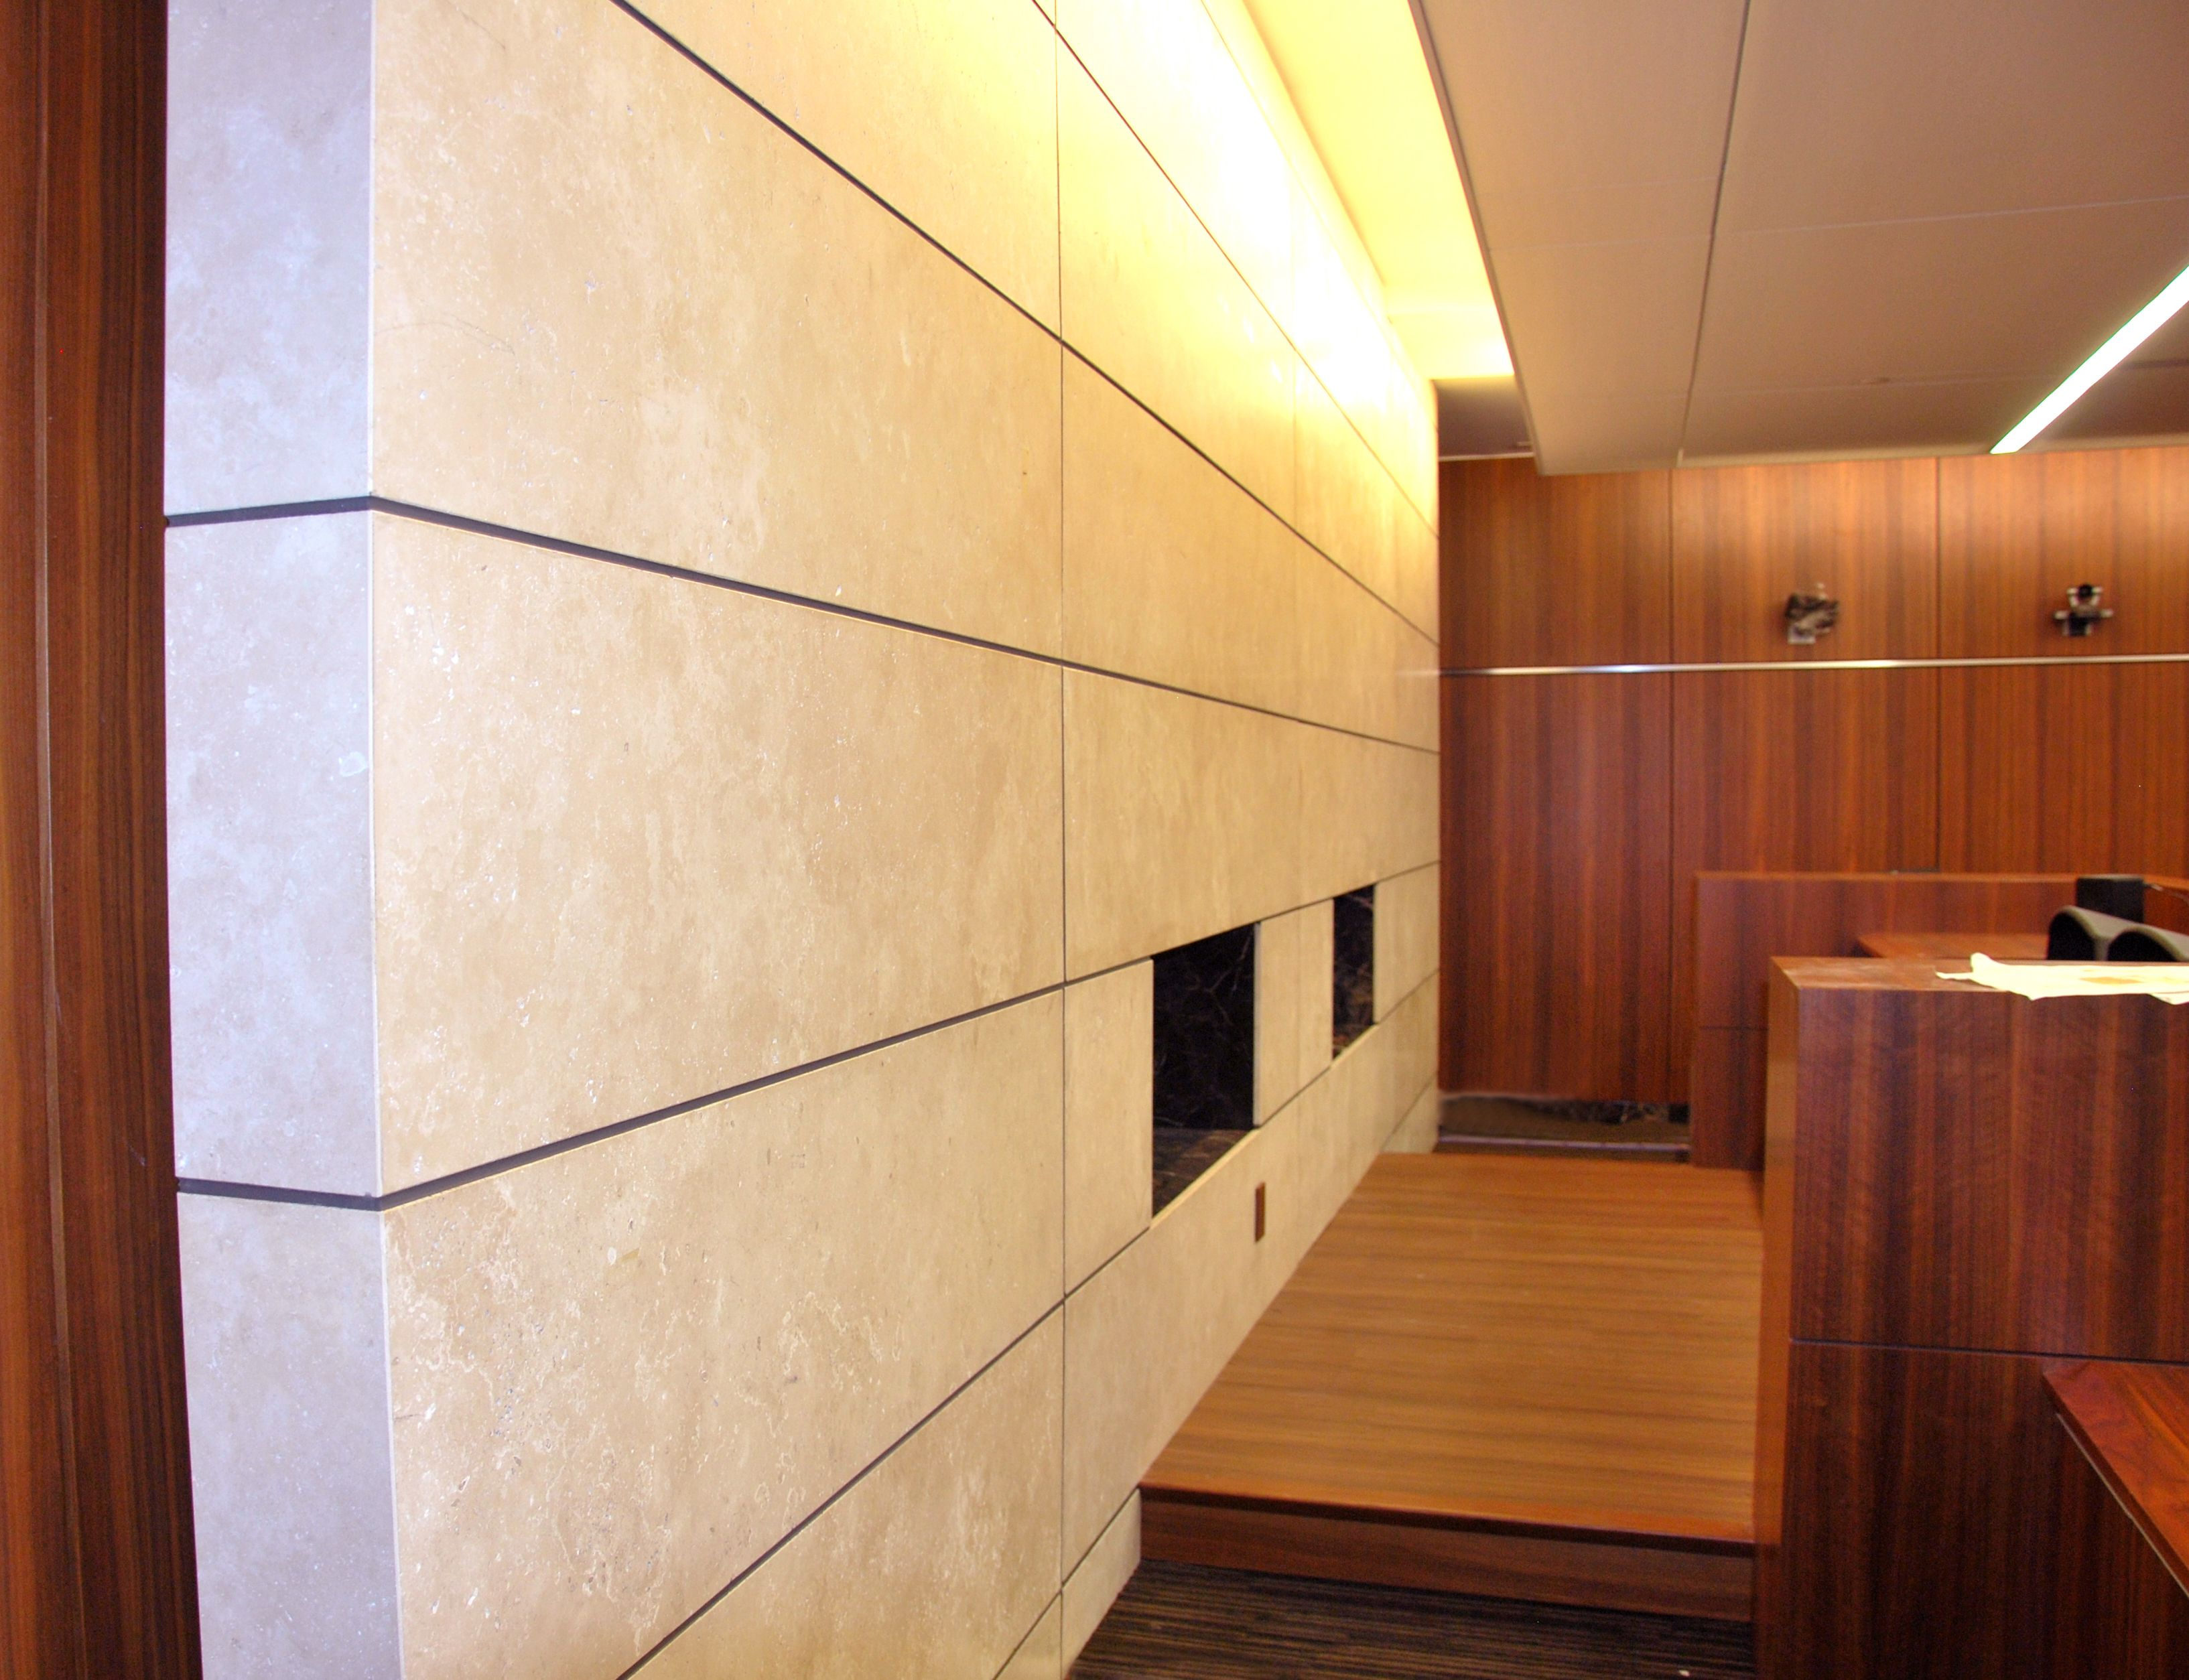 Trimstone Lightweight Stone Systems Interior Wall Cladding Courthouse Commercial